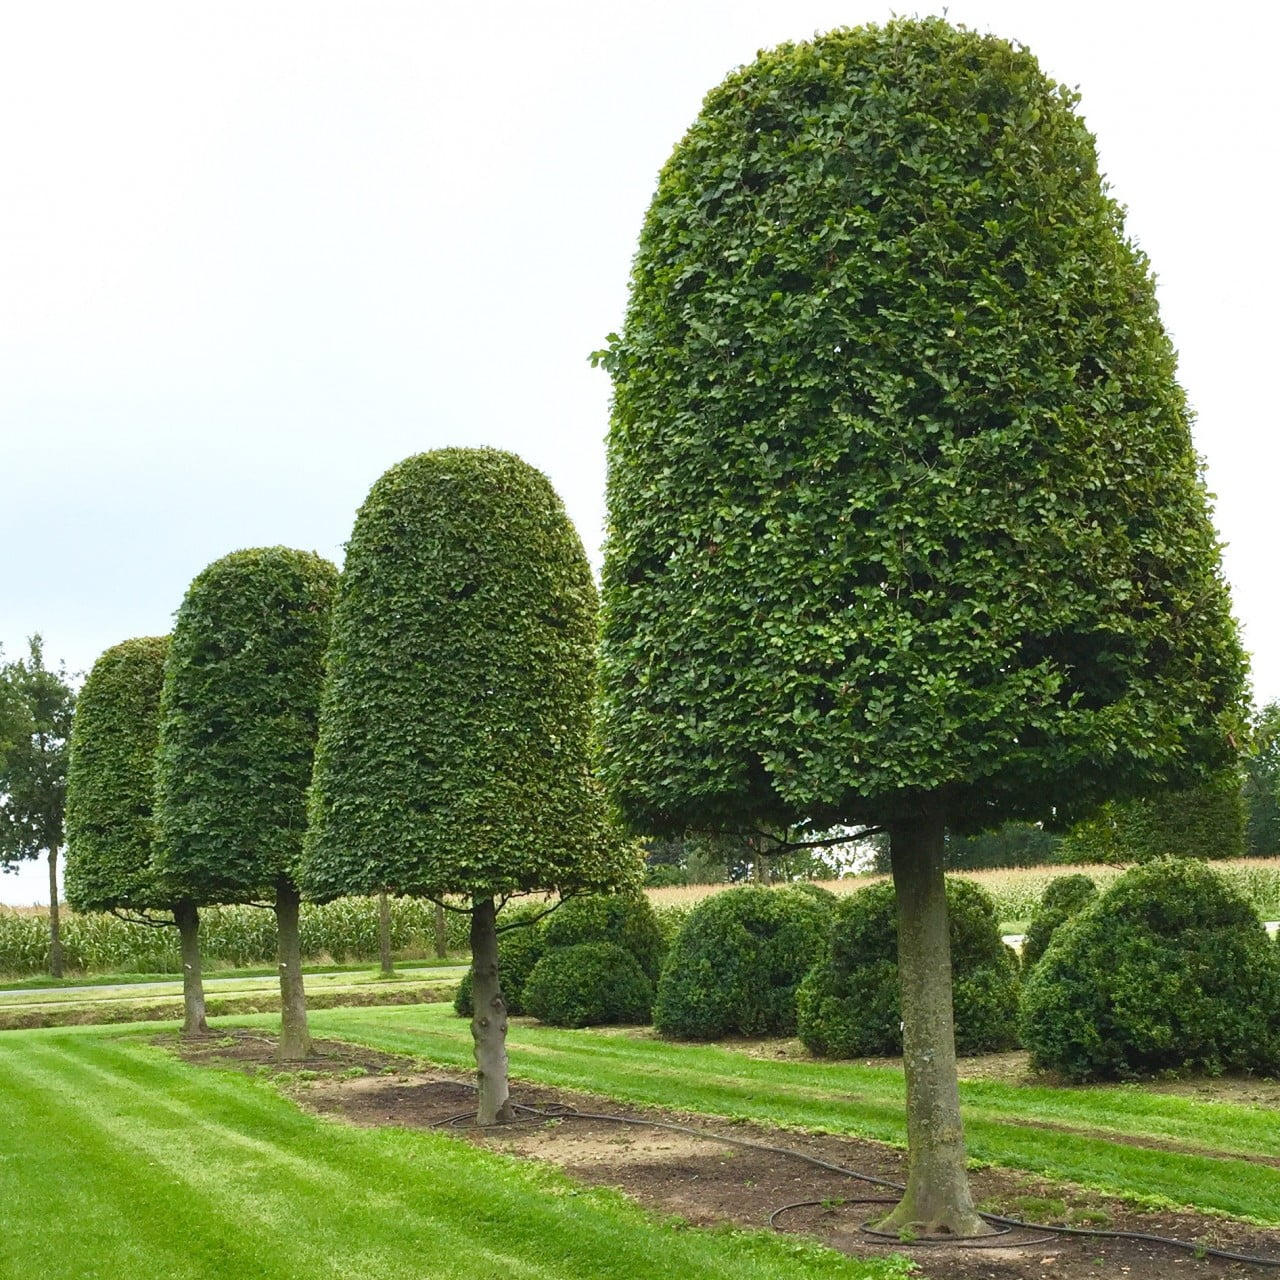 Beautiful mature topiary at the nursery in Belgium. This is hornbeam